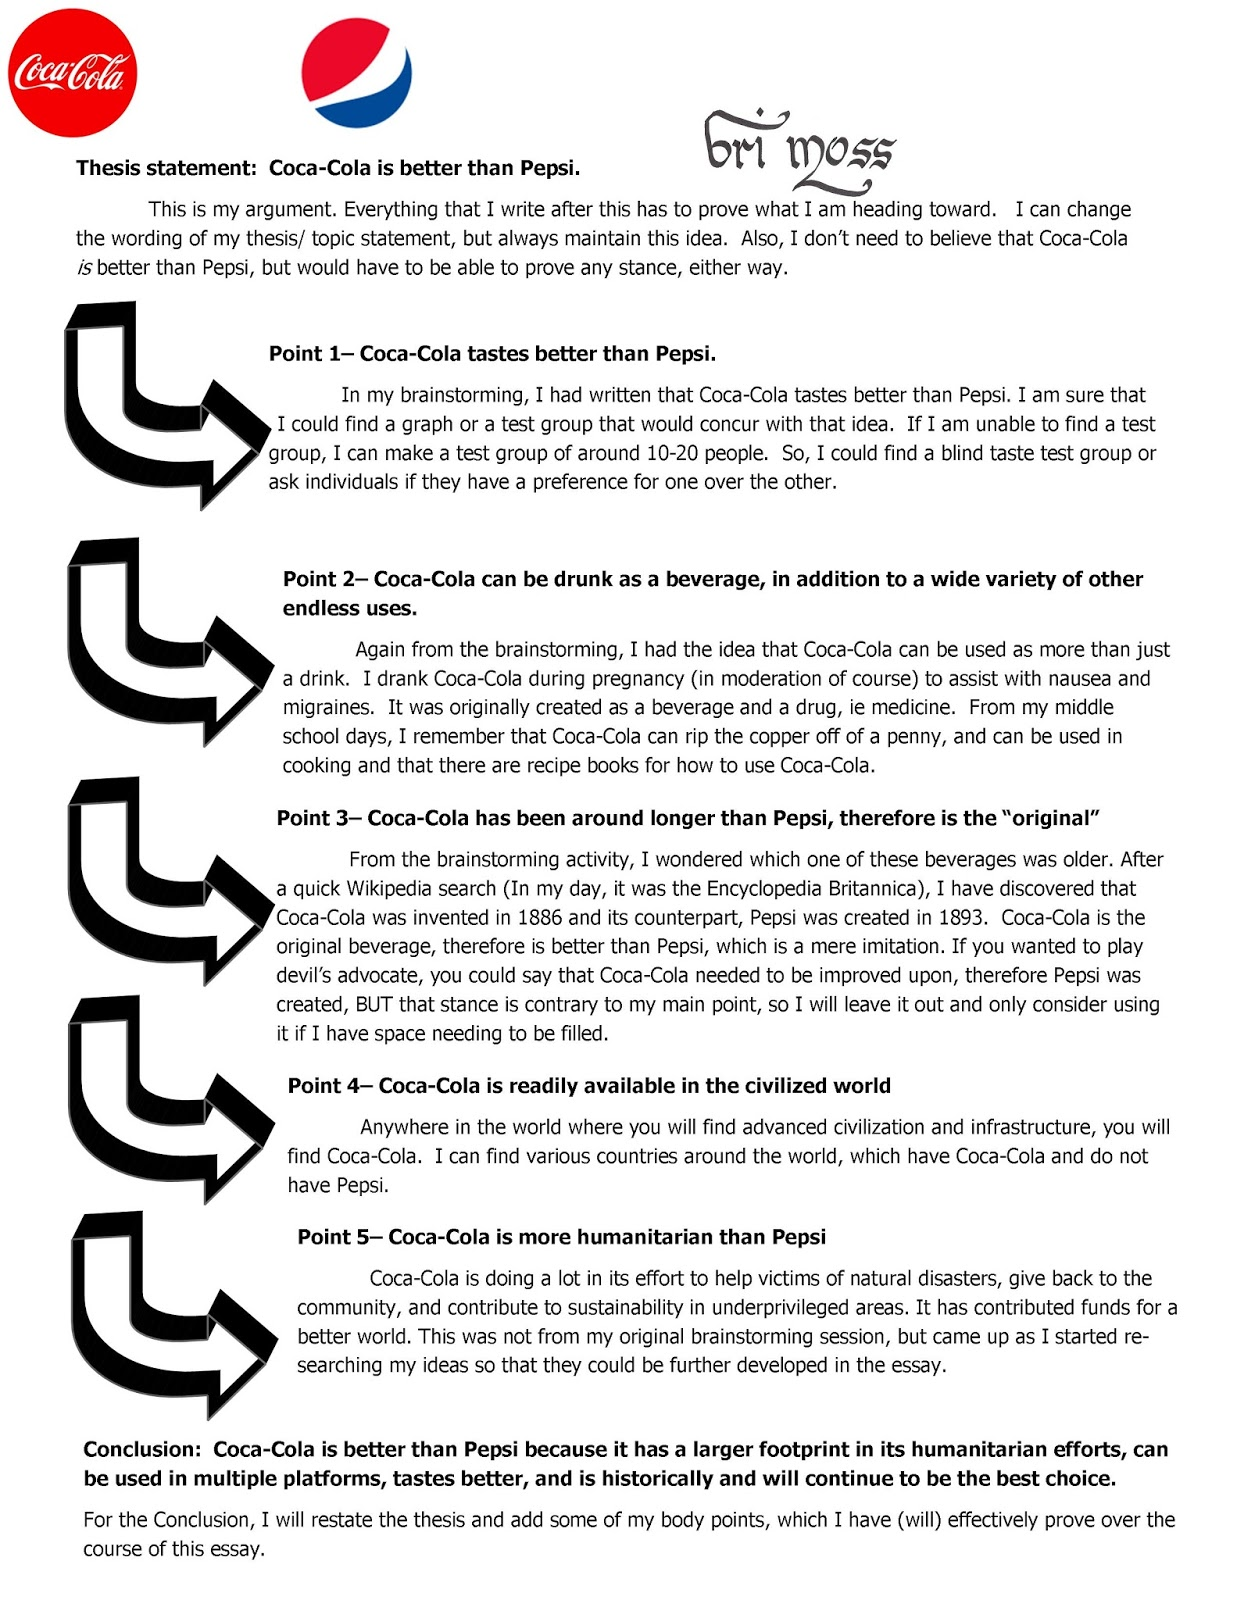 bravi travels life culture awesomeness how to write an essay in this jpeg image that i have made i have detailed my thesis and body points the final step of this would be to sit down and actually write the essay